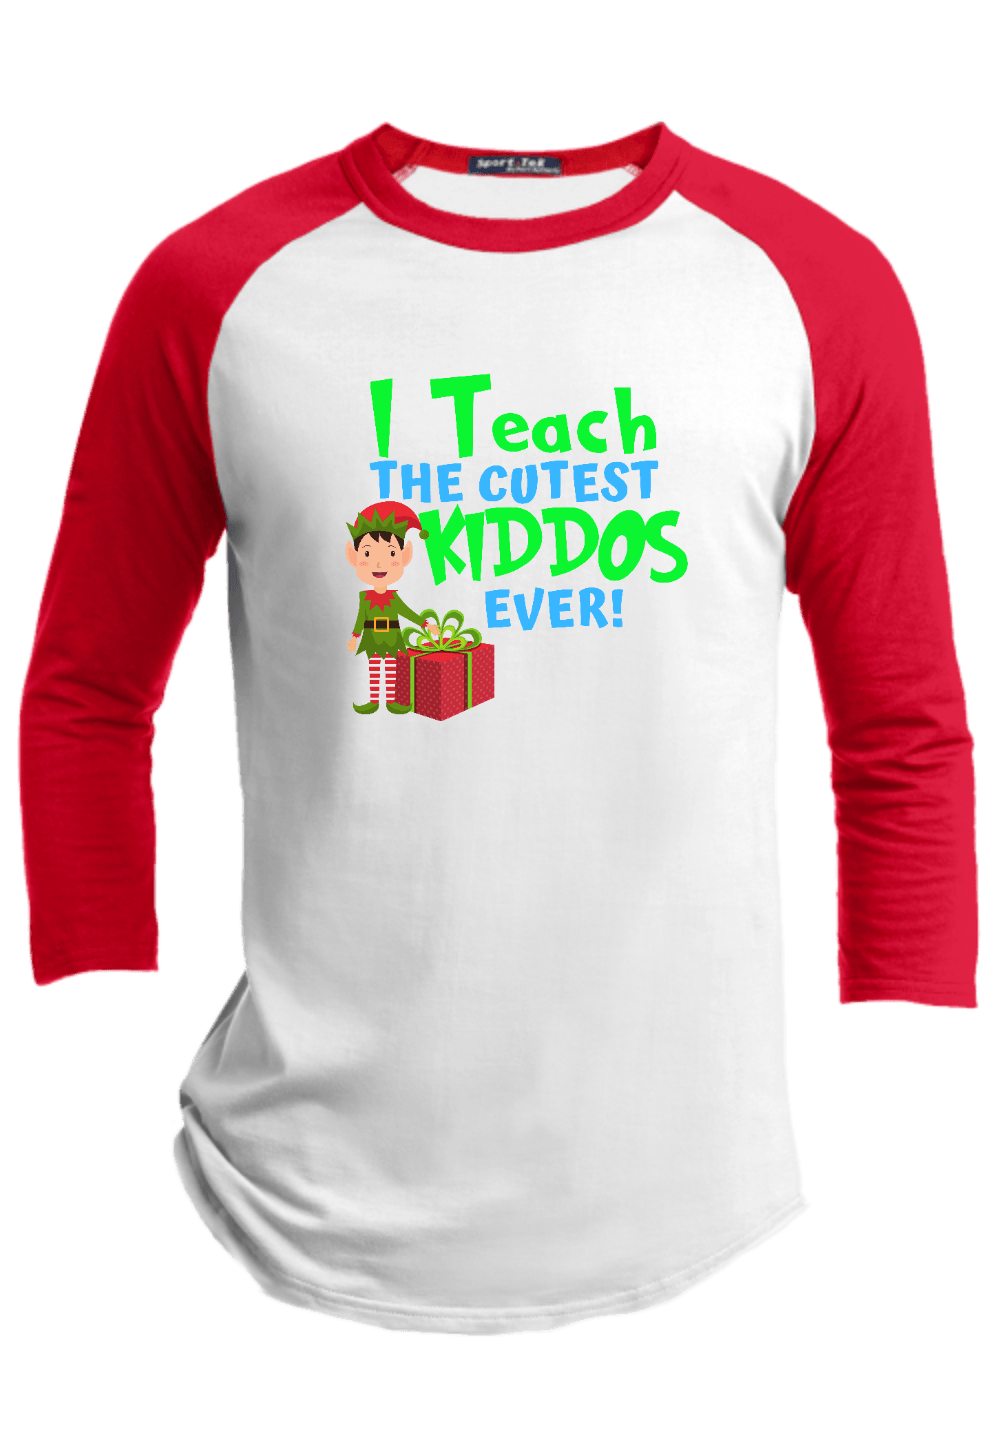 I Teach the Cutest Kiddos Ever Christmas Raglan